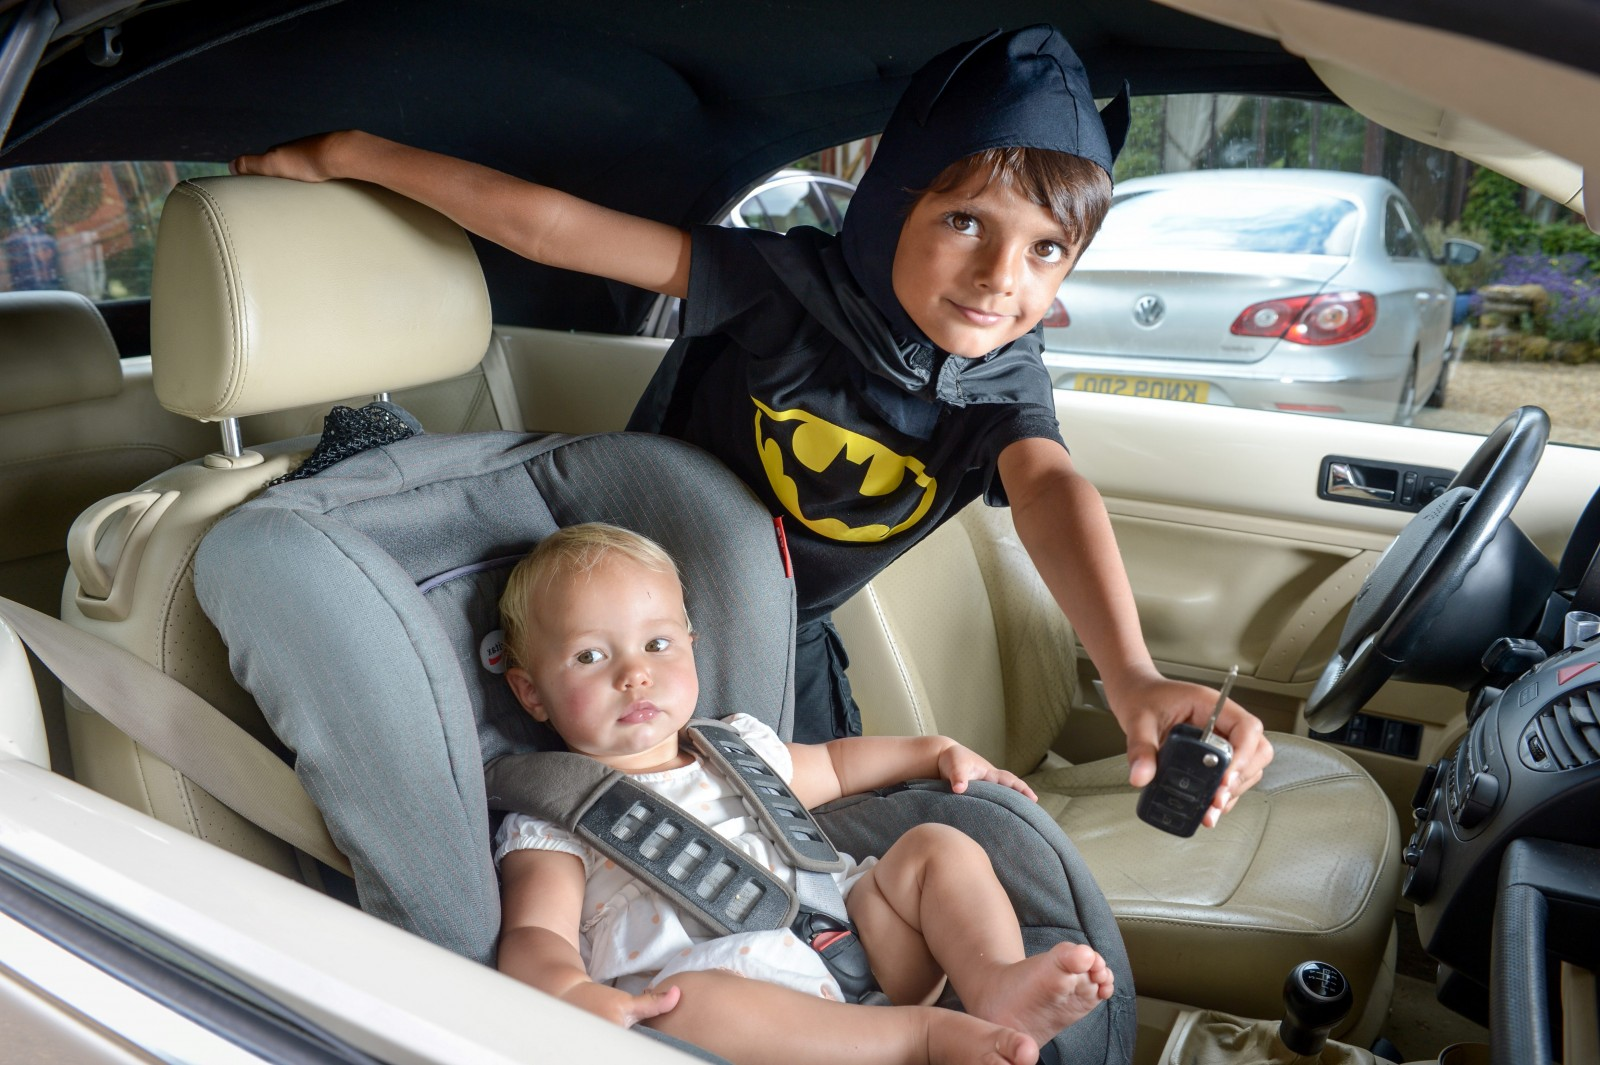 Mini hero! Boy dressed as Batman saves tot trapped in car